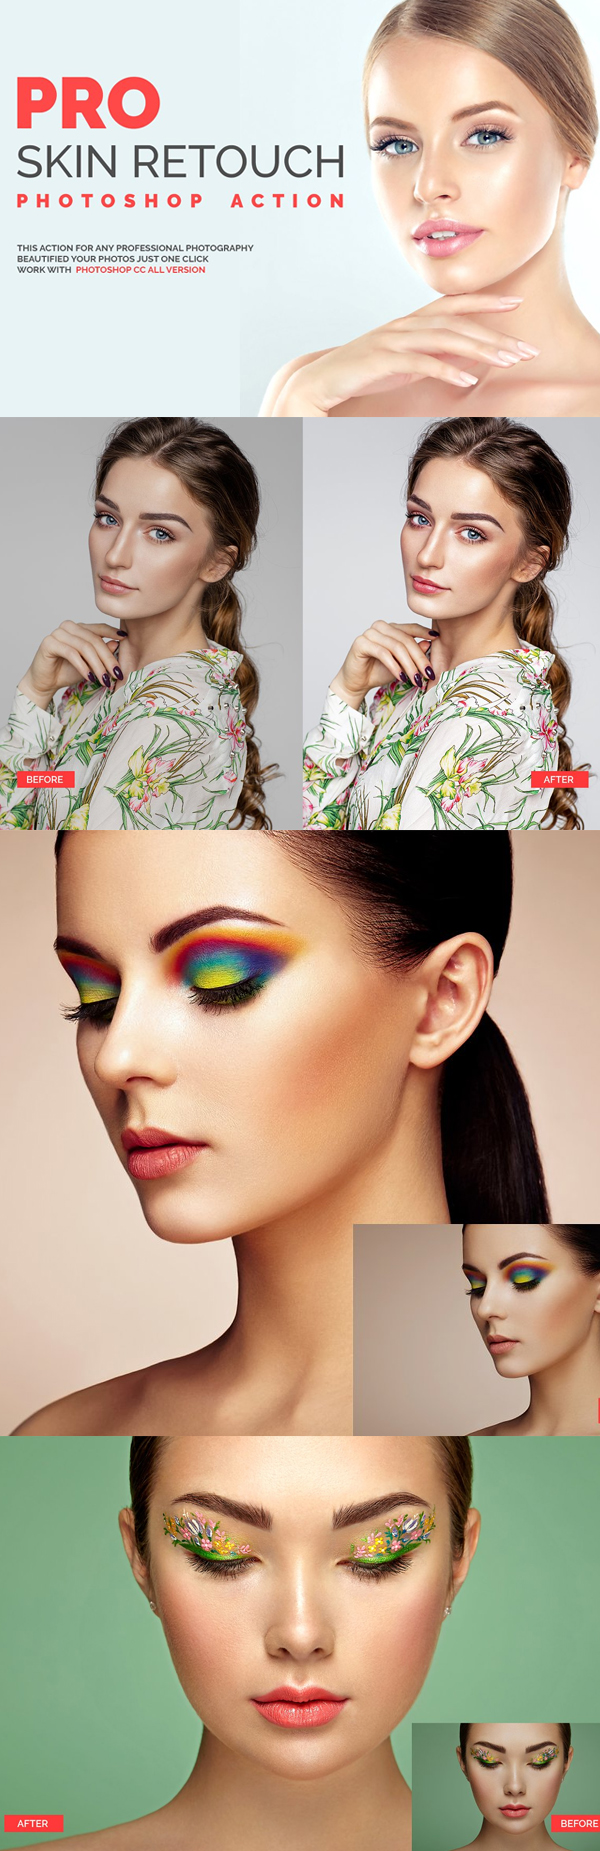 Pro Skin Retouch Photoshop Action